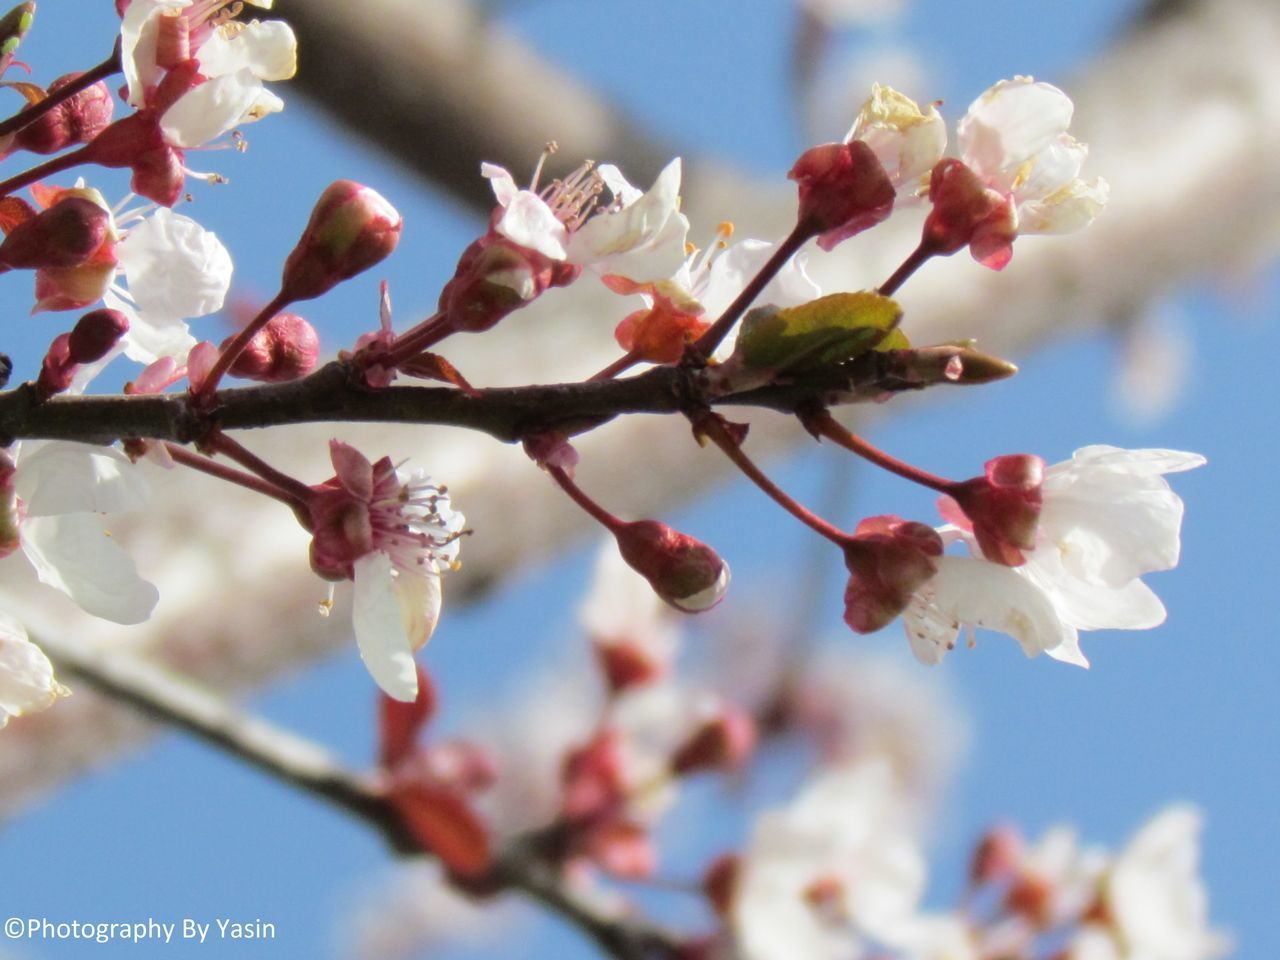 flower, growth, fragility, beauty in nature, nature, tree, freshness, springtime, day, branch, low angle view, petal, blossom, no people, outdoors, close-up, sky, blooming, flower head